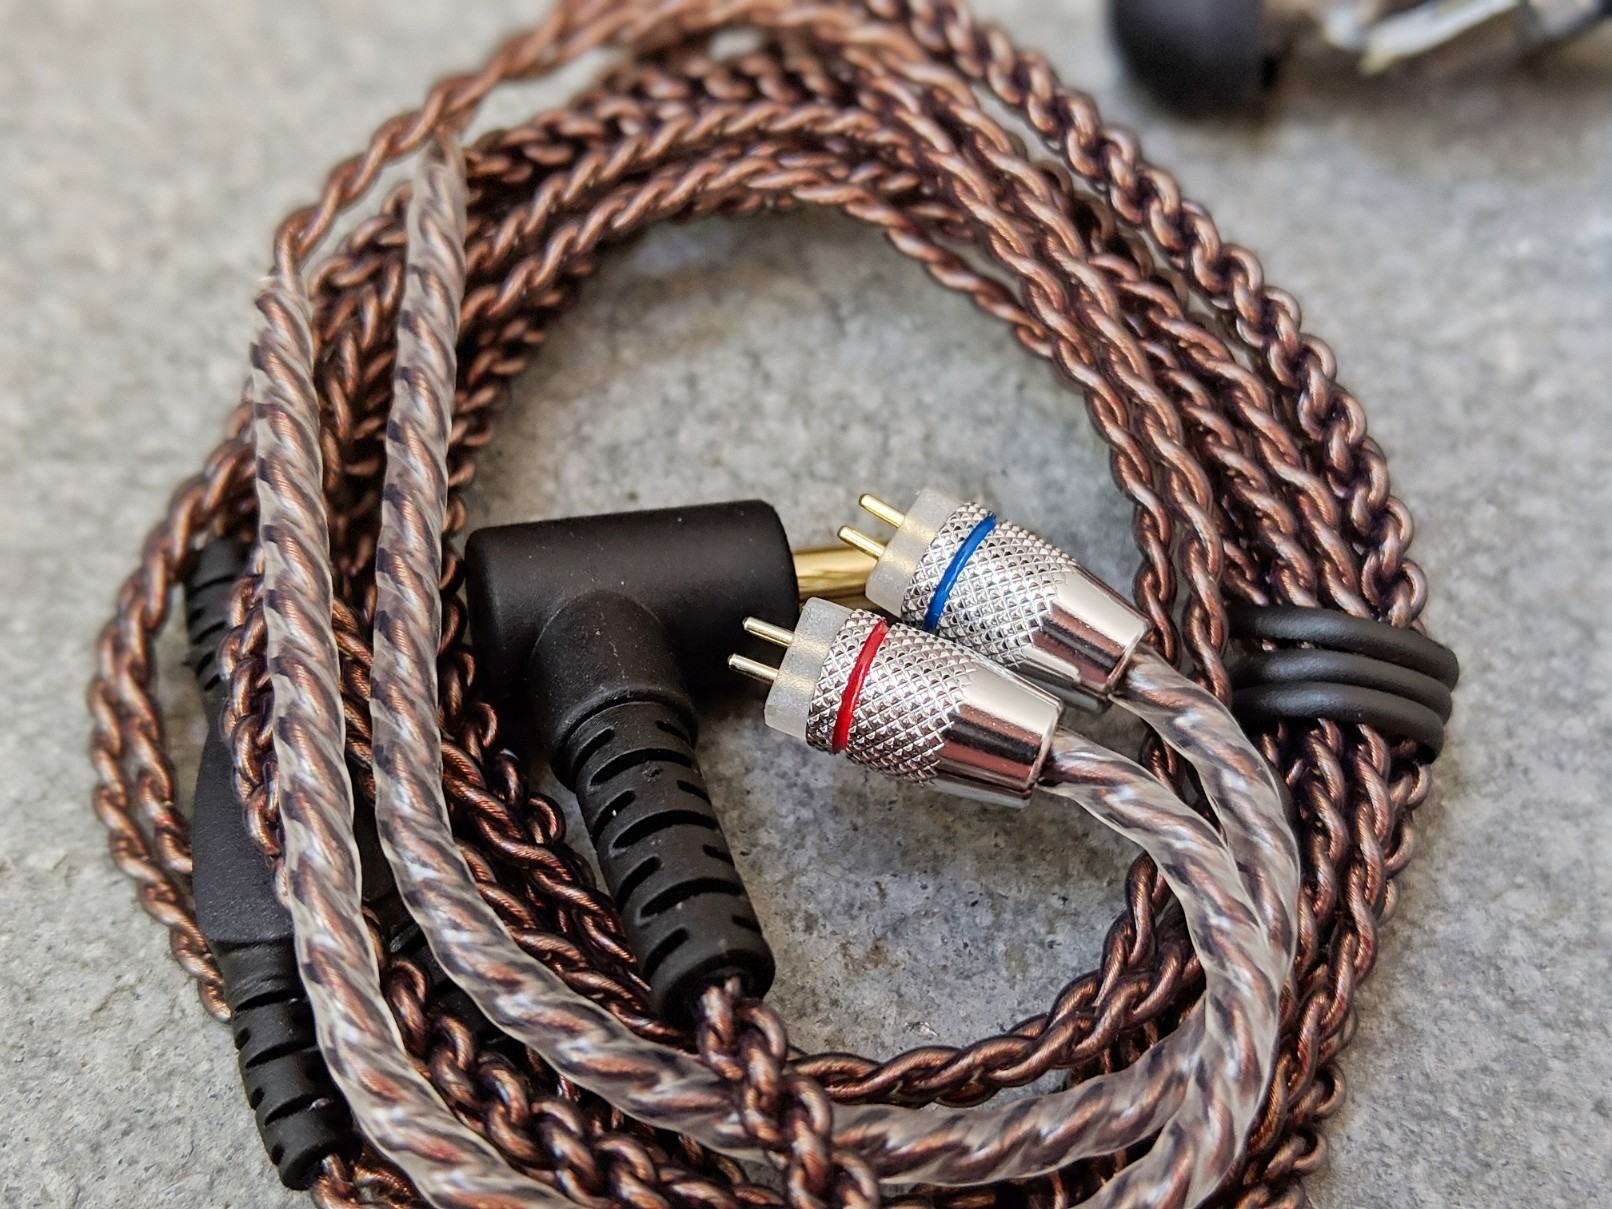 Cable for CCA earphones